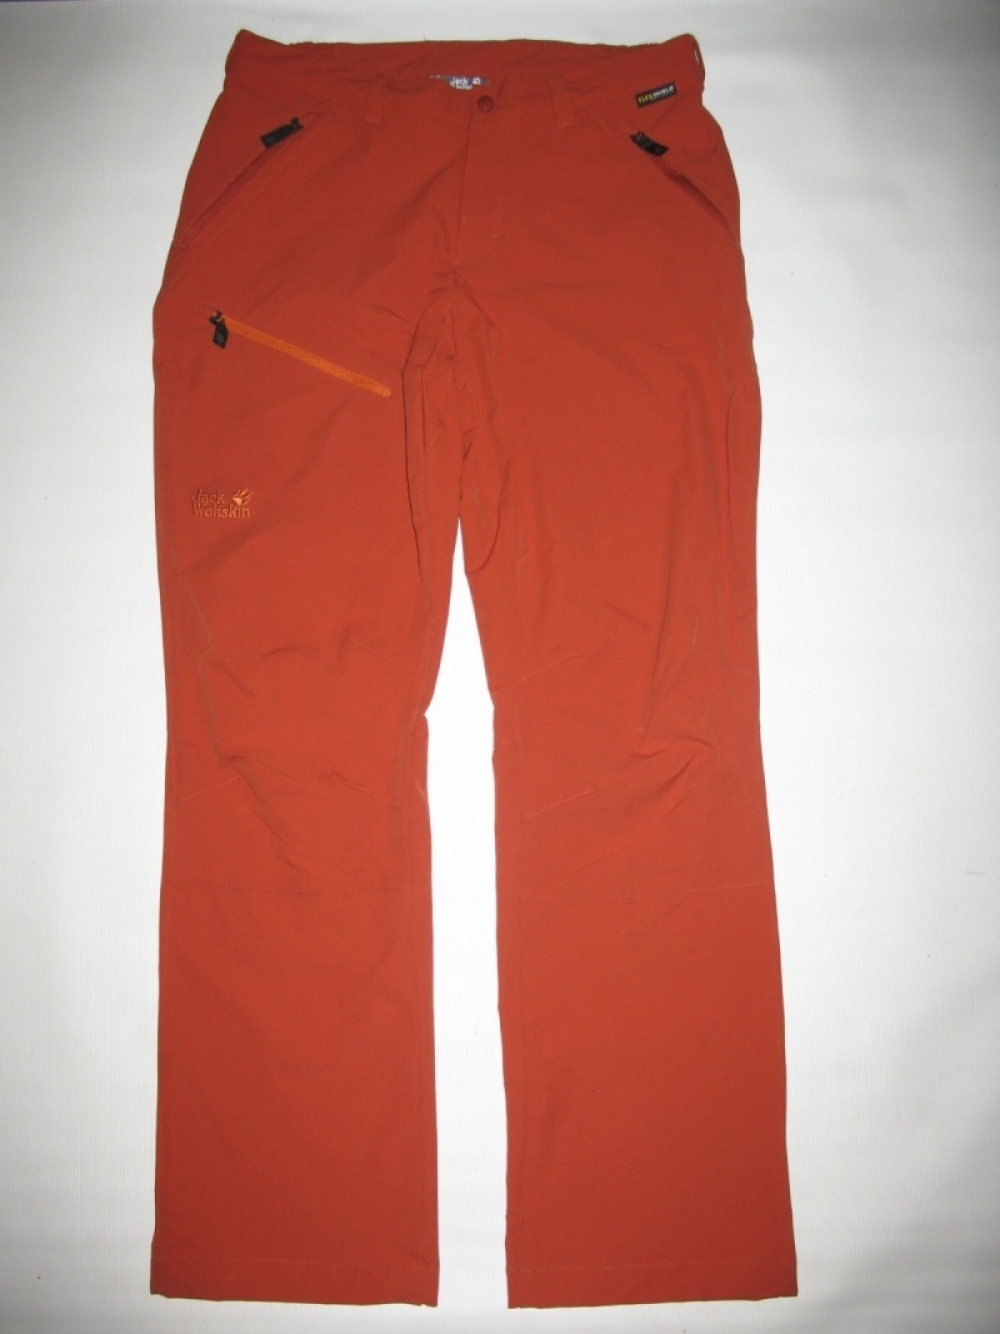 Штаны JACK WOLFSKIN Activate pants (размер 48-М/L) - 17976